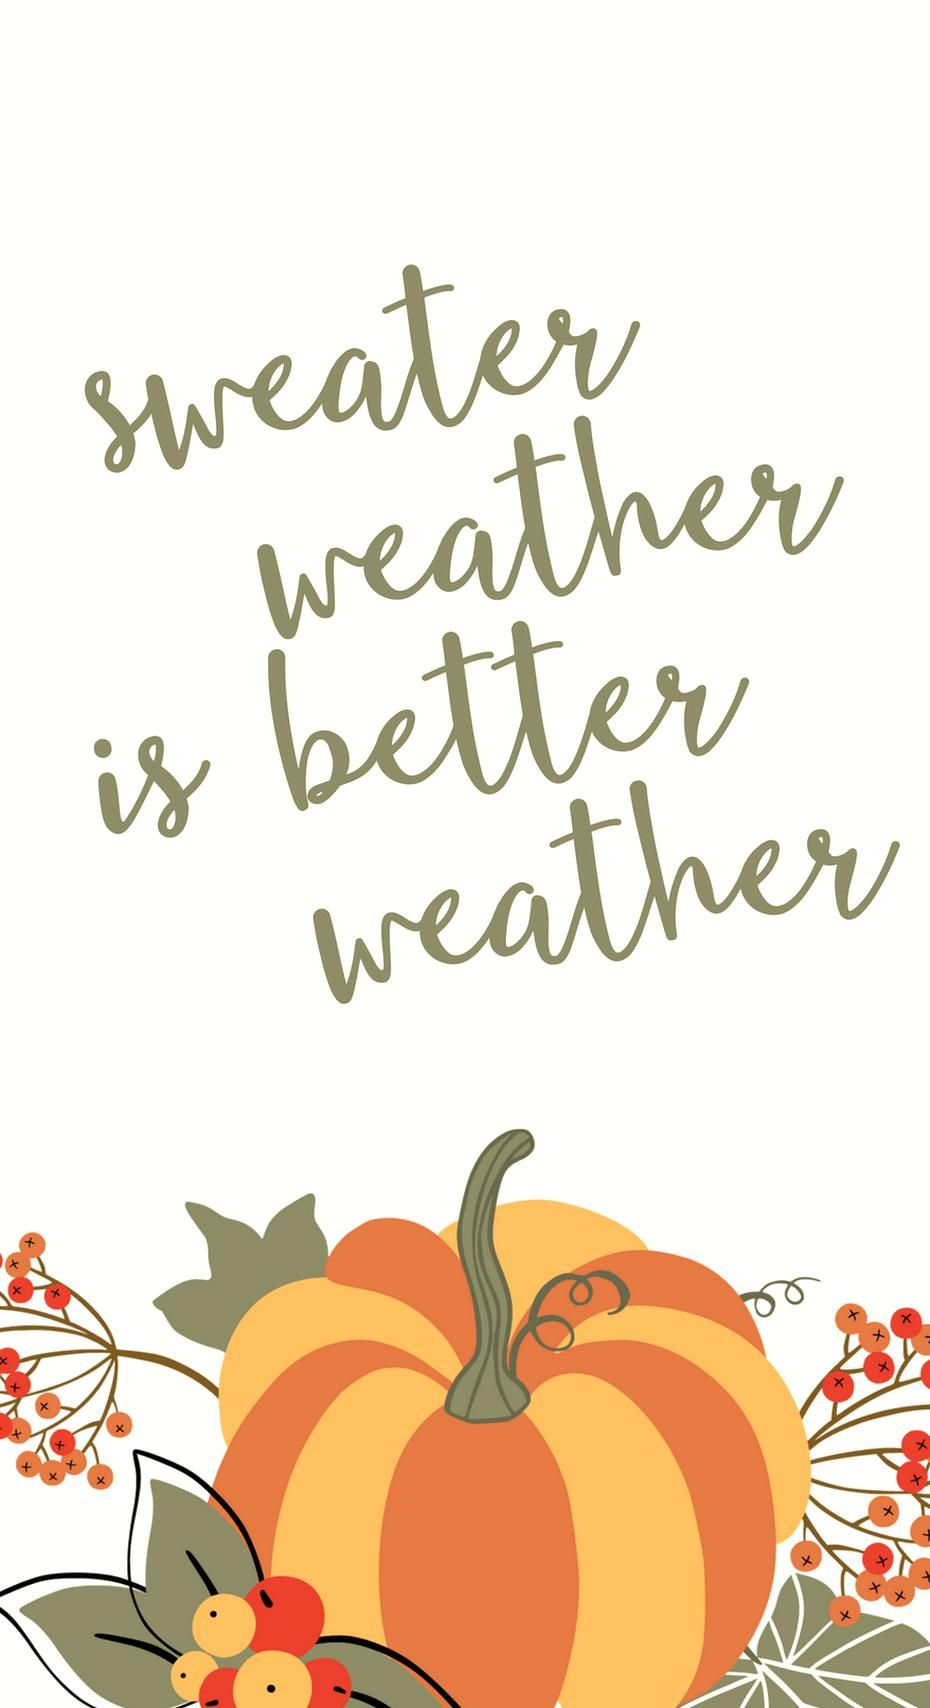 Fall Quotes For Your Phone Sweater Weather Is Better Weather October Smart Phone Wallpapers In 2020 Autumn Quotes Sweater Weather Better Weather